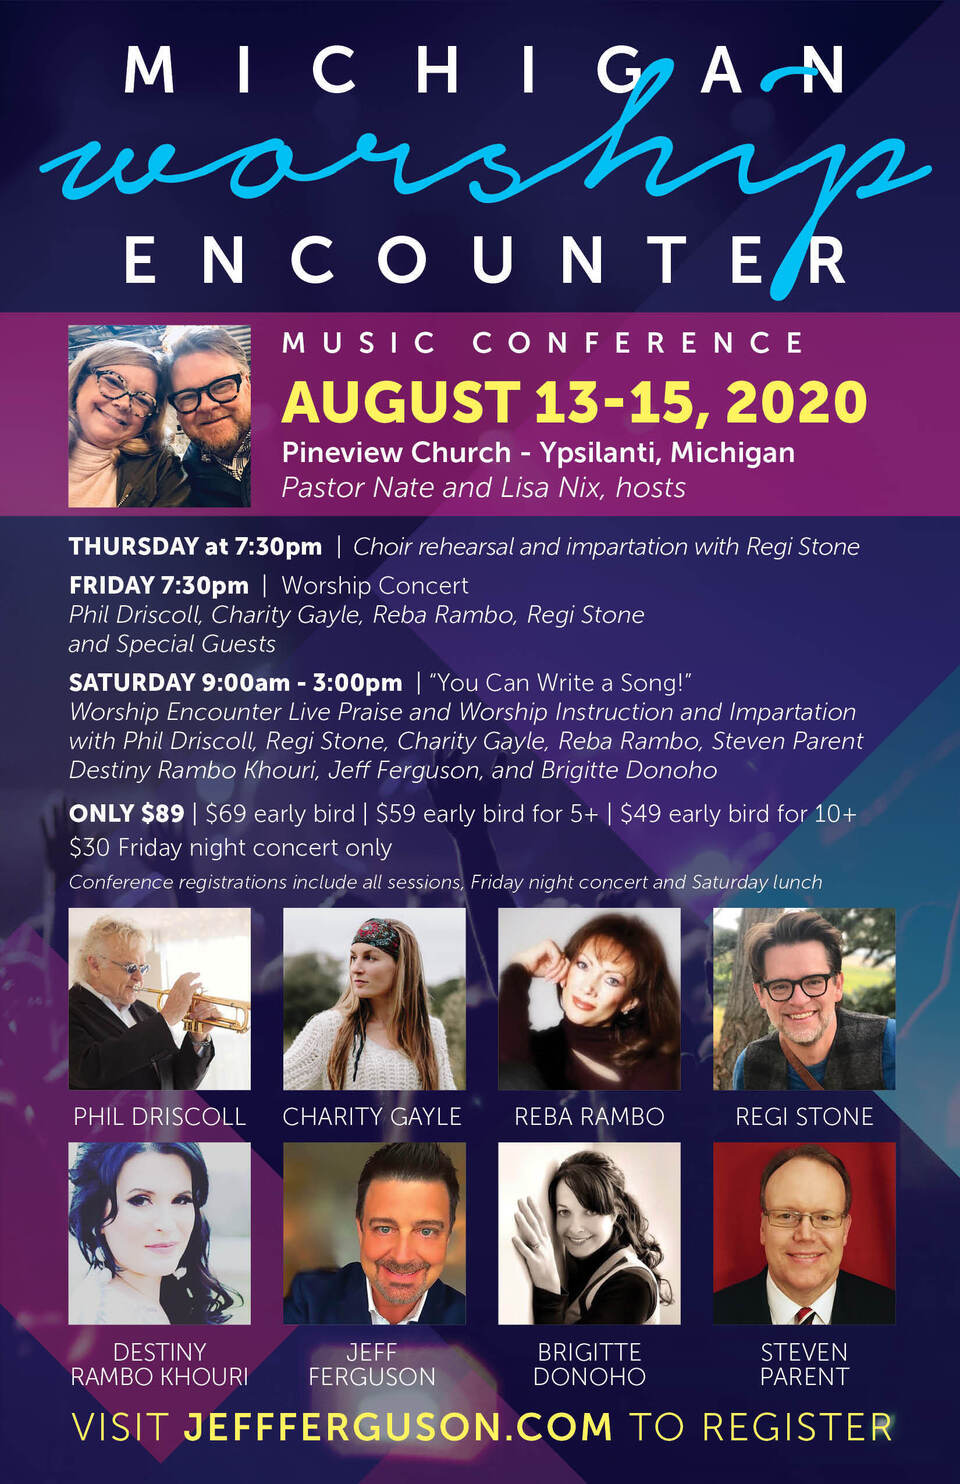 Michigan worship encounter flyer3